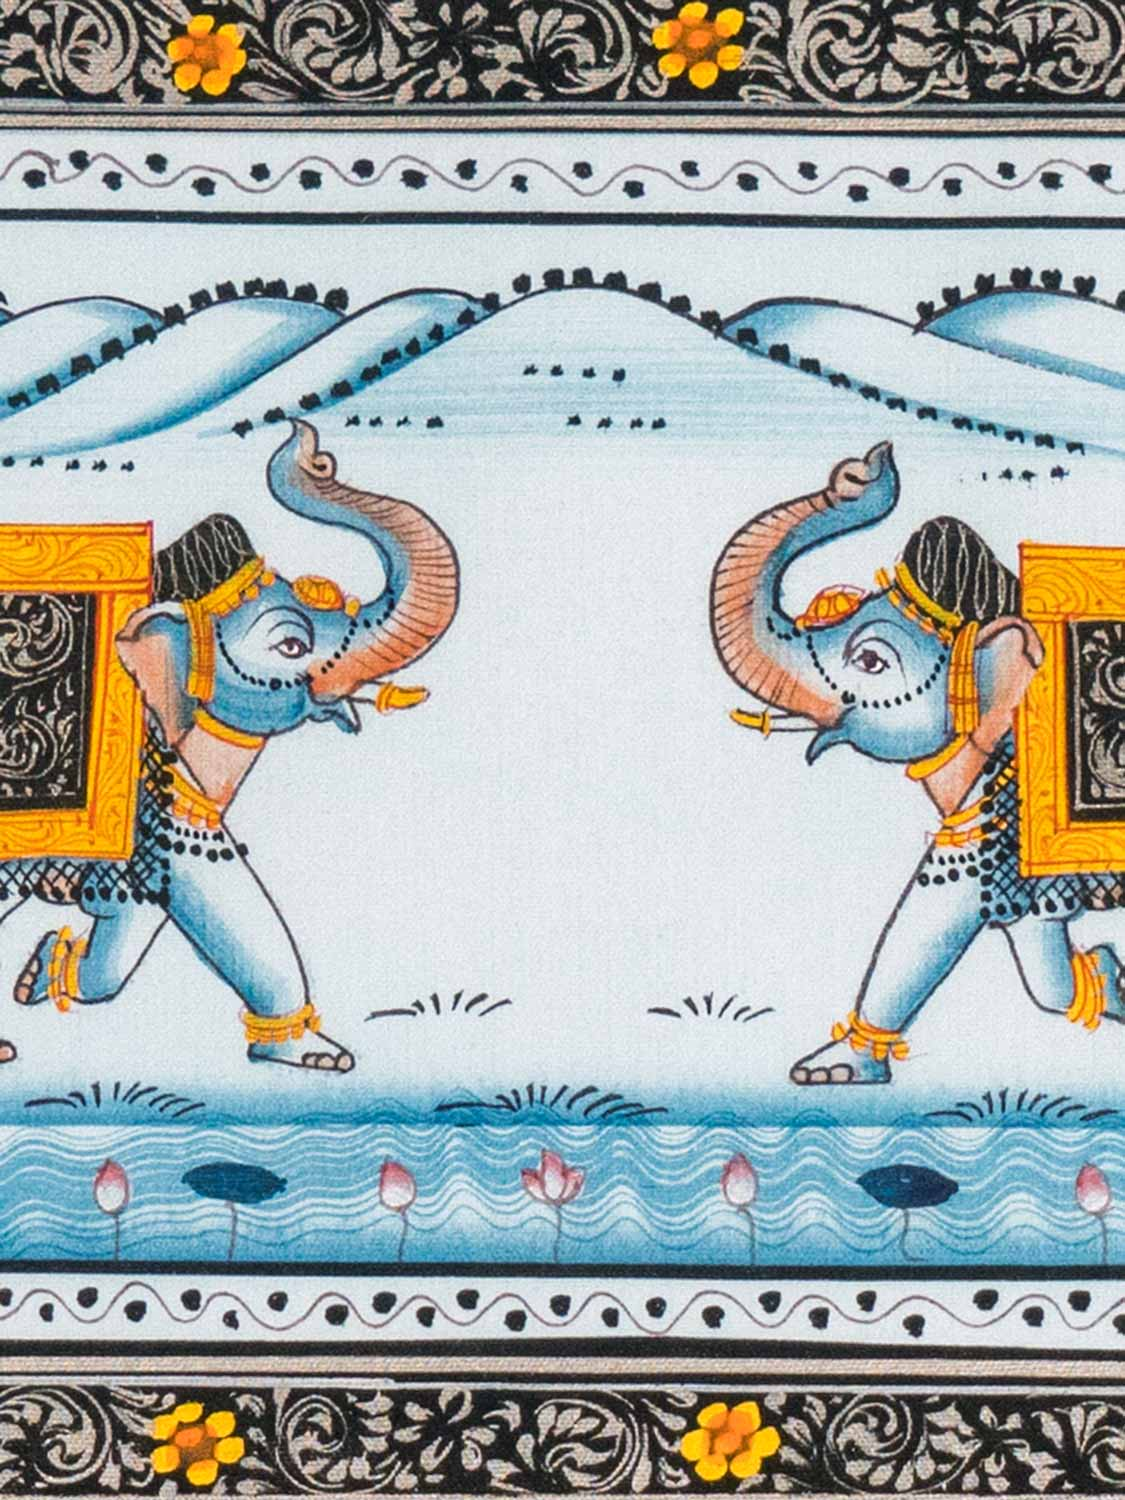 Indian Miniature Painting of Elephants, Horses & Camels